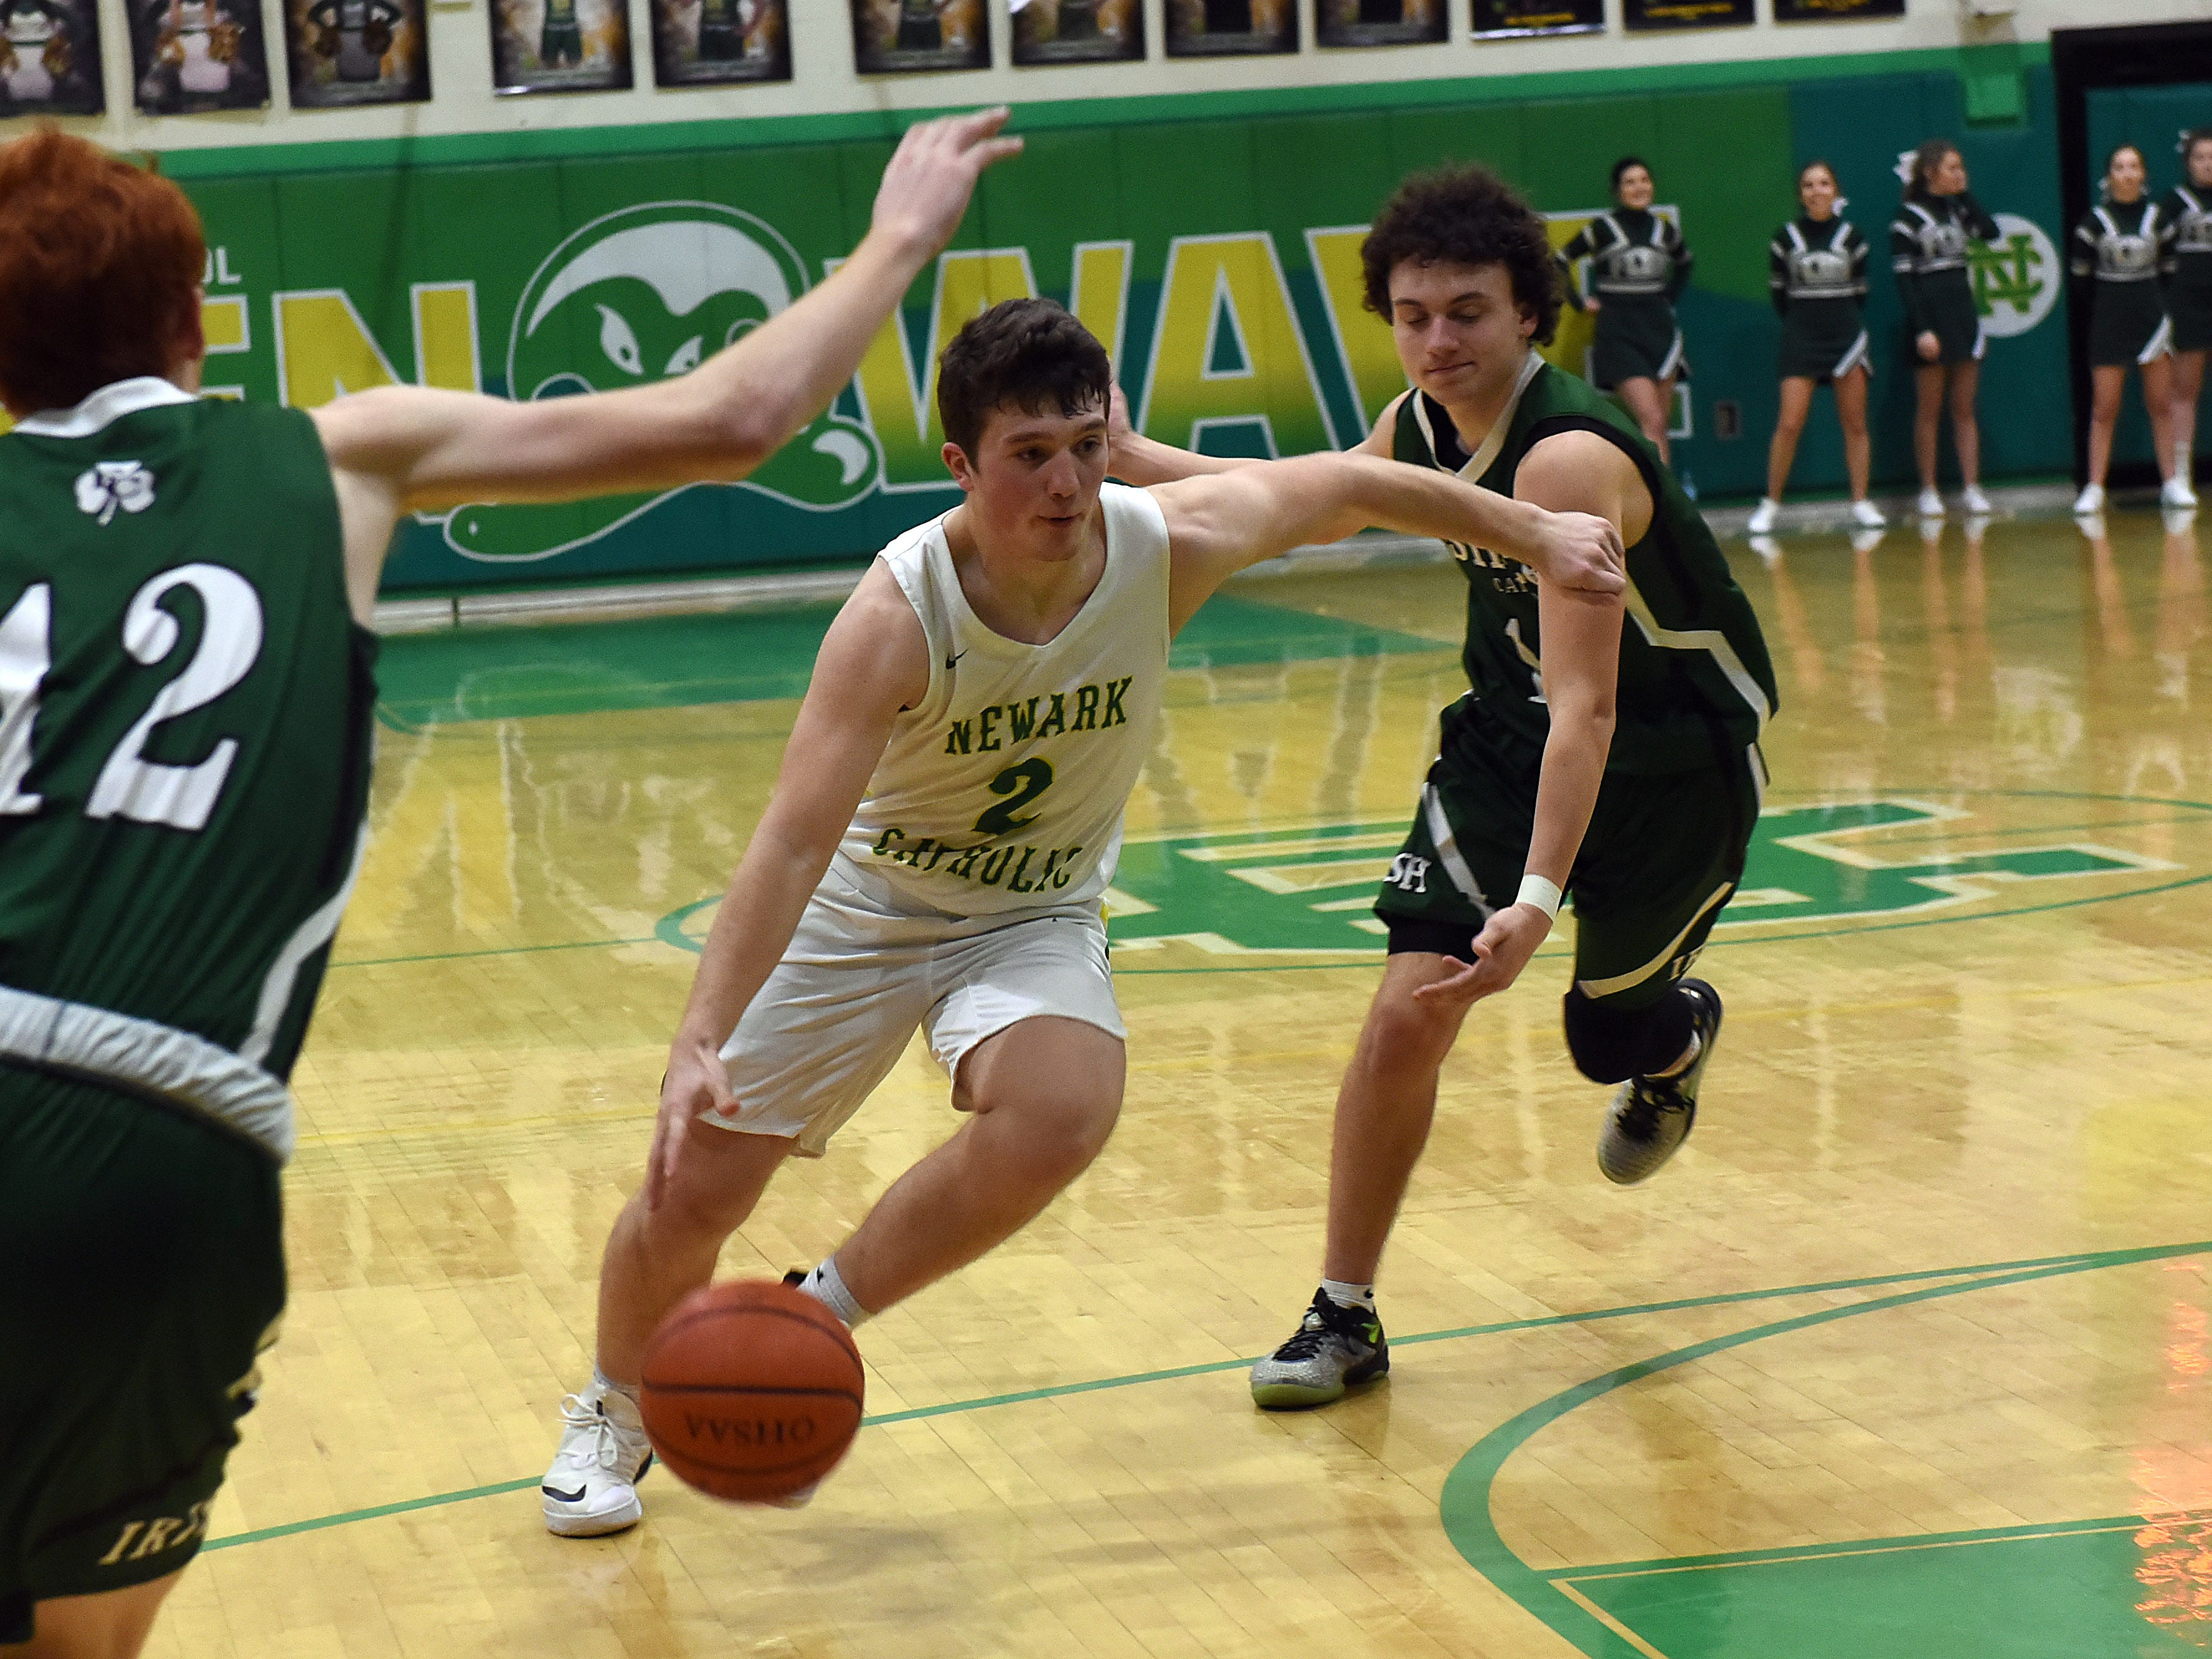 Newark Catholic junior Connor Roesink (center) dodges Fisher Catholic defenders seniors Jayden Boyden (left) and Peyton Shockley (right) during Monday night's game at Newark Catholic. The Irish won with a buzzer-beating 3-pointer defeating the Green Wave 52-49.